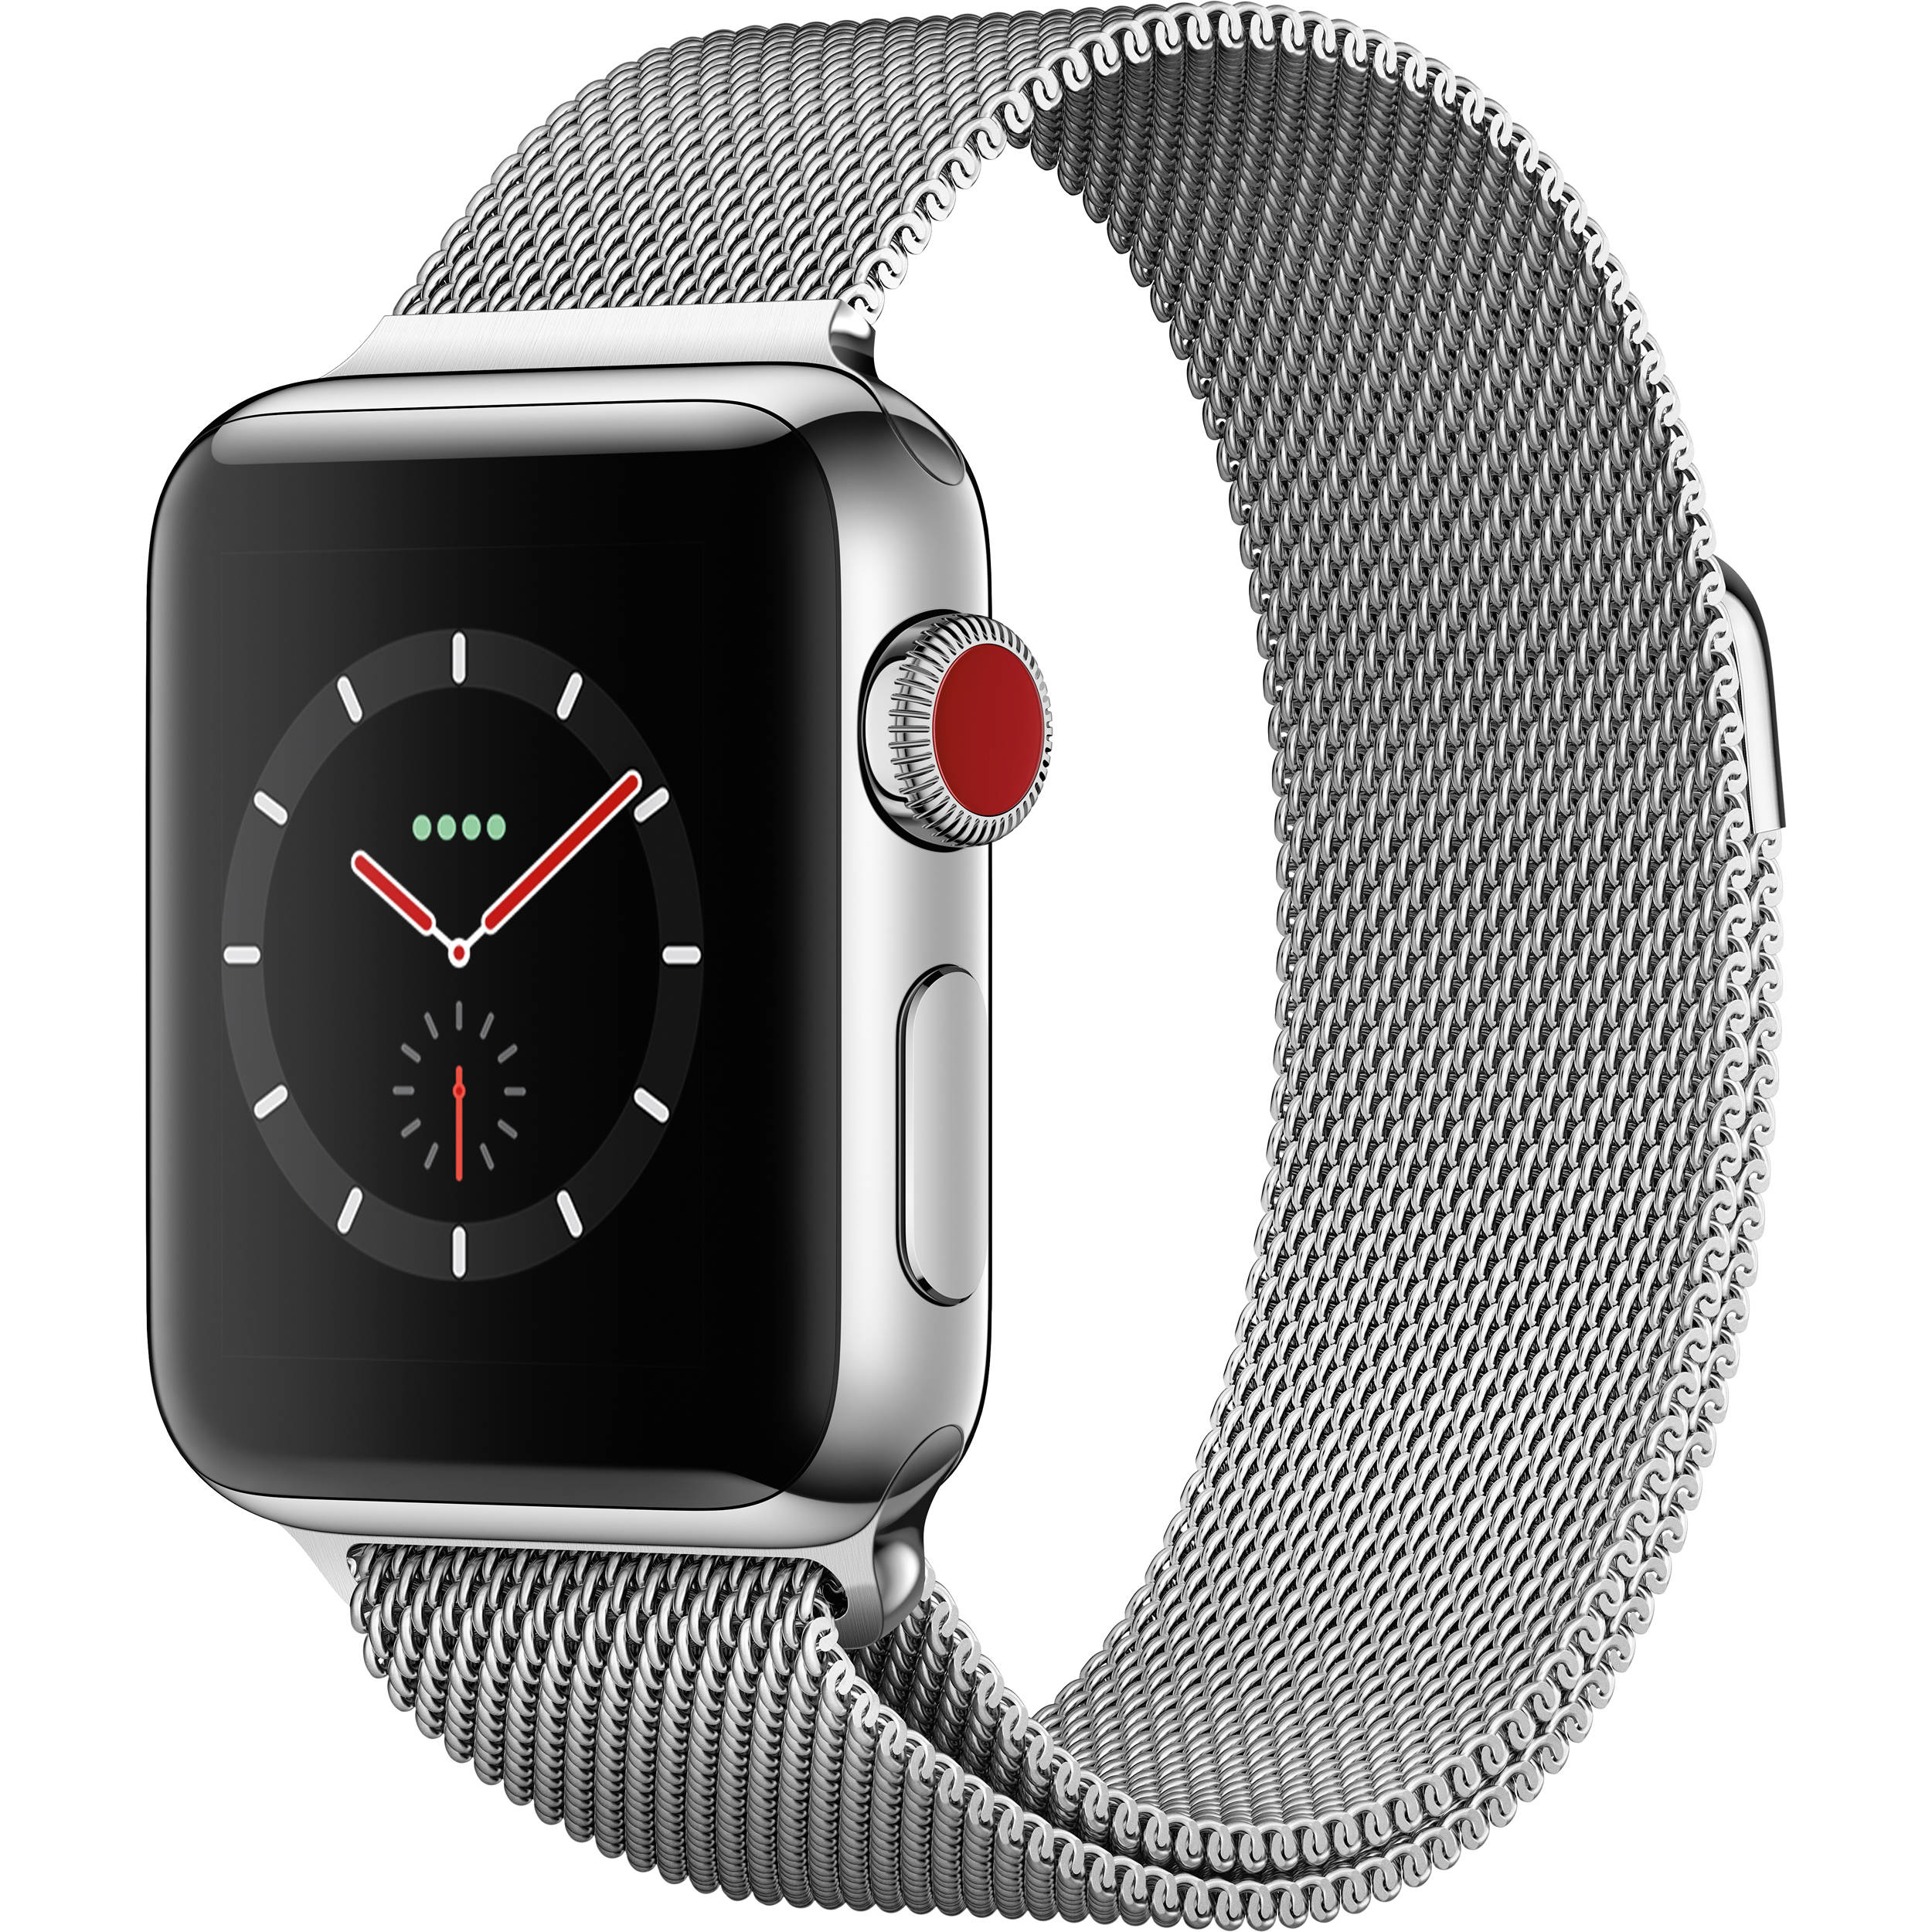 apples help comfortable of by watches little new exterior on loops band breathable more keeping away also milanese sport watch is soft make hands sports just it covered those and for with very in apple the loop s